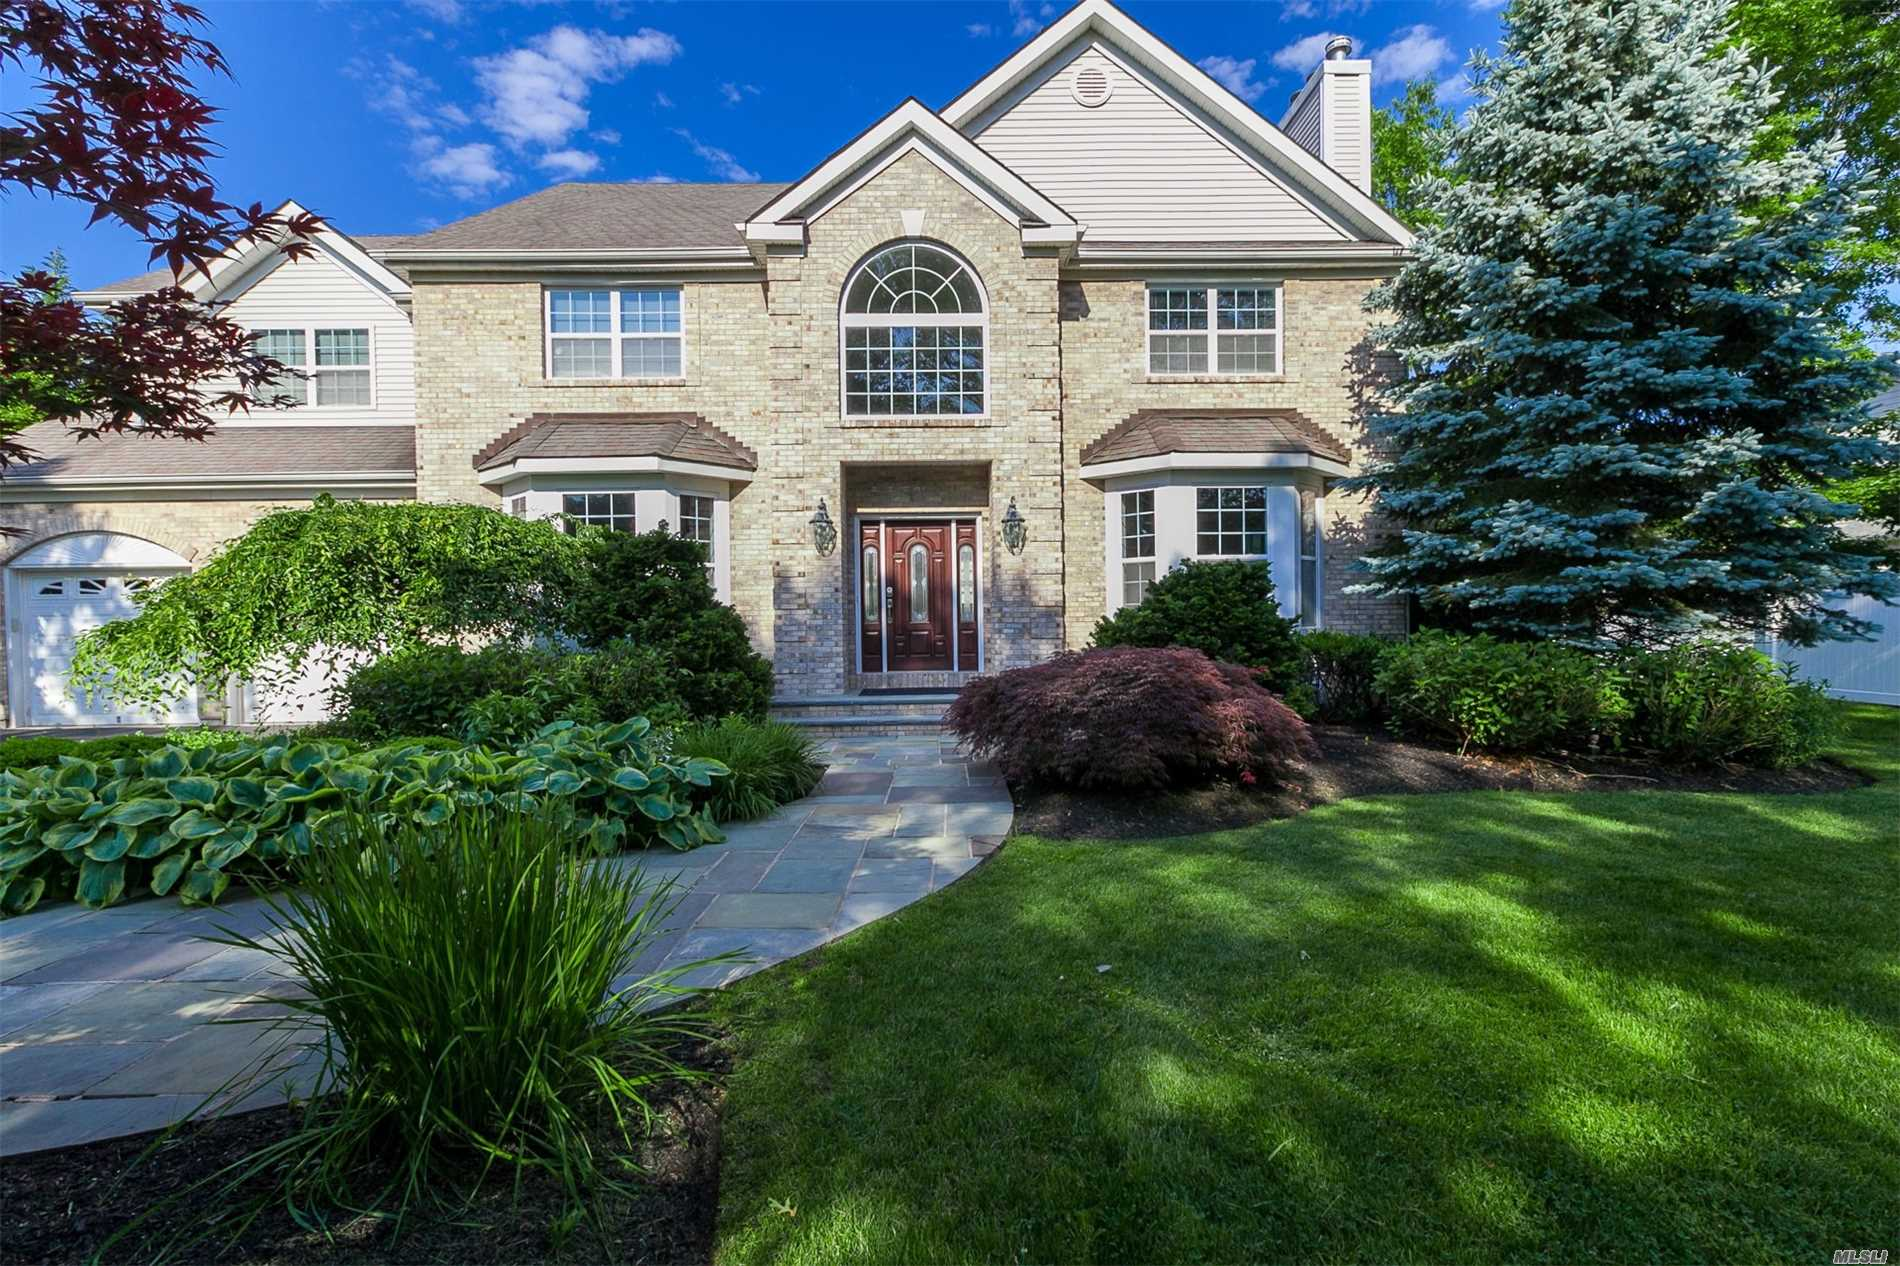 Price Adjustment! Make This Stunning 5 Bd 3 Full Bth Home With Over 3600Sqft Of Living Space Yours! Re-Finished Hard Woods, New Carpeting In Bdrms, Huge Closets Throughout, Beautiful Kitchen With Sub Zero Appl, Granite Counters& Bcksplsh, Huge Full Fin Basmnt With Summer Ktch And Outside Entrance, Tiered Patio On Over An Acre Of Private Prop Fully Landscaped With Outside Lighting On A Cul De Sac, Mater Suite With Fireplace And Tray Ceiling, Central Vac, Custom Blinds, Custom Moldings.Much More!